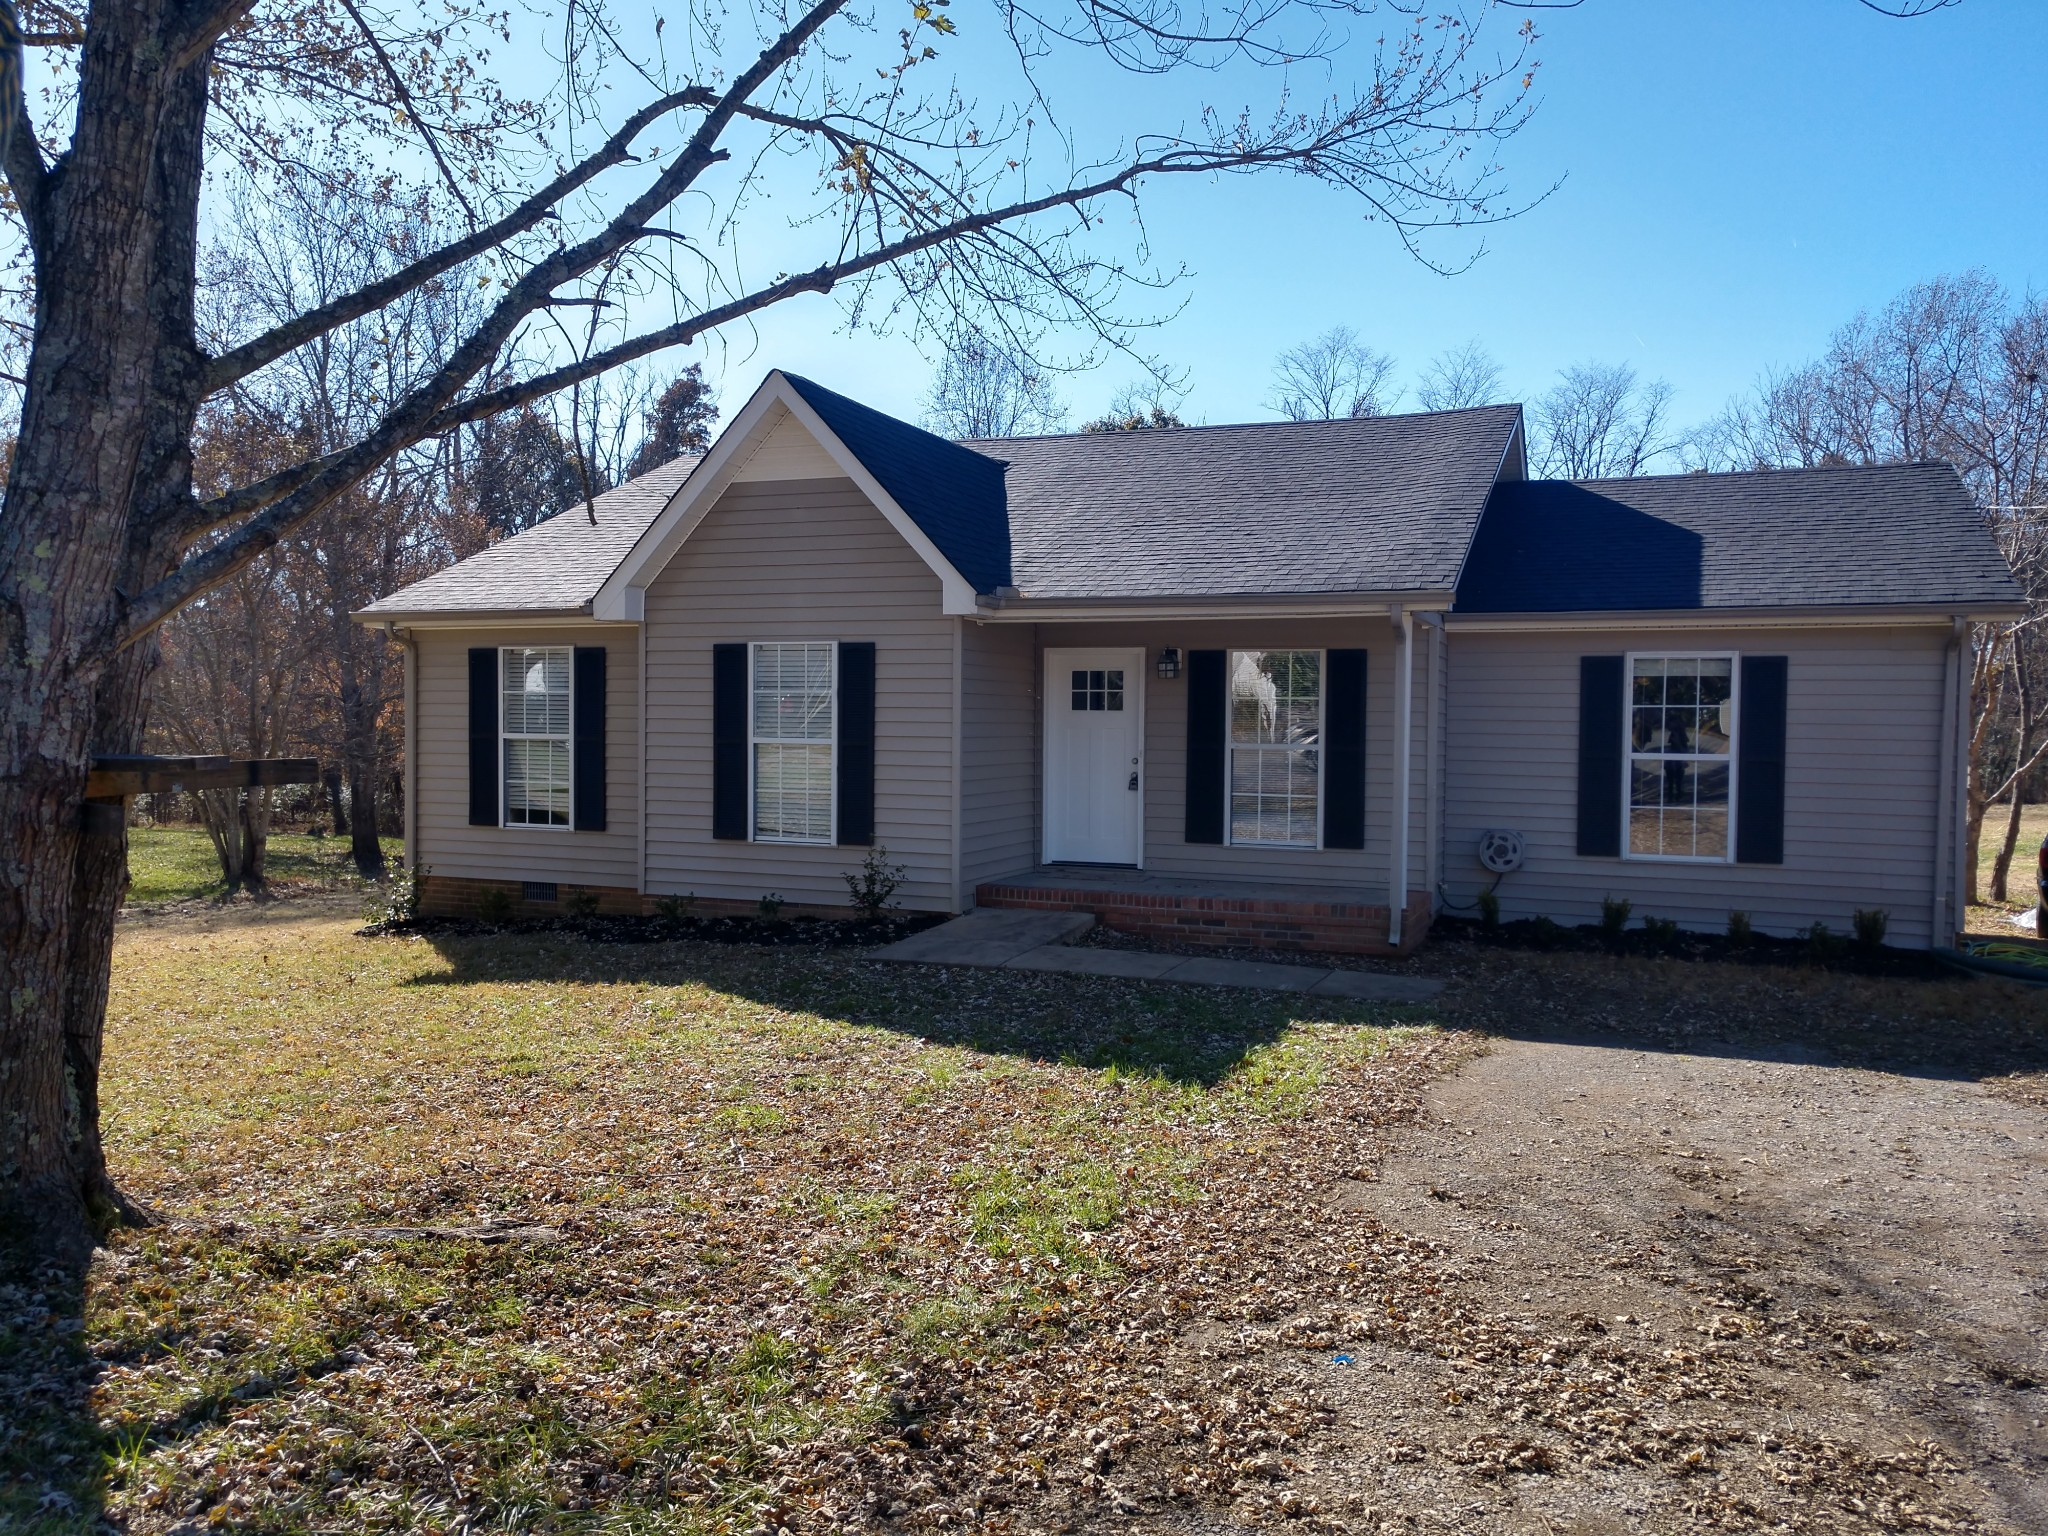 2830 Hinson Rd, Woodlawn, TN 37191 - Woodlawn, TN real estate listing